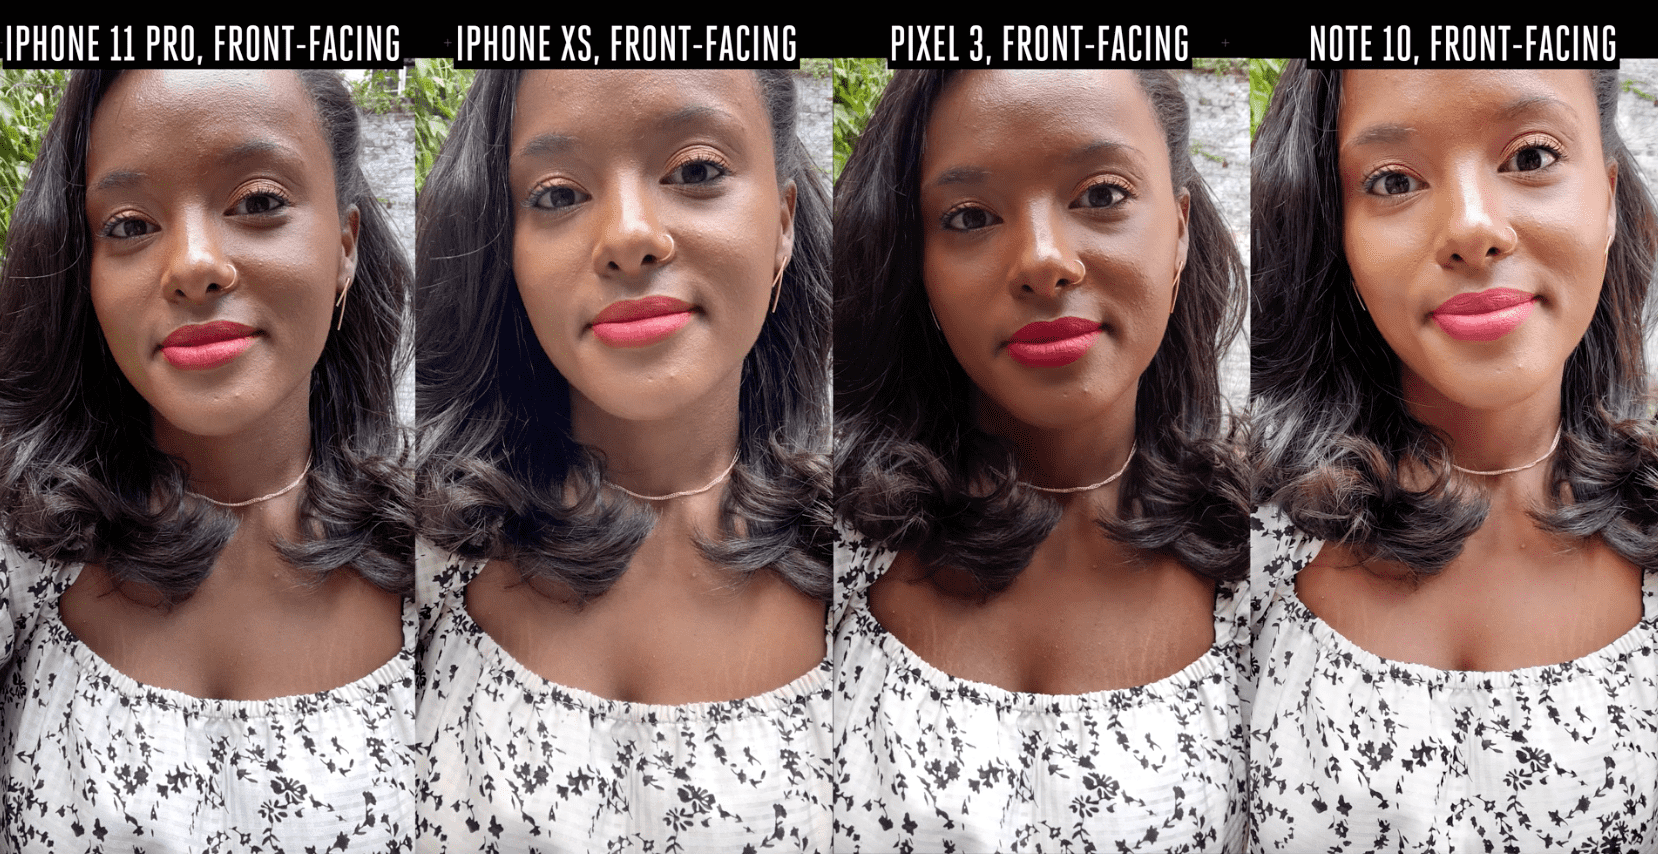 Iphone 11 Pro Camera Compare With Pixel3 Note10 By Theverge Img 6